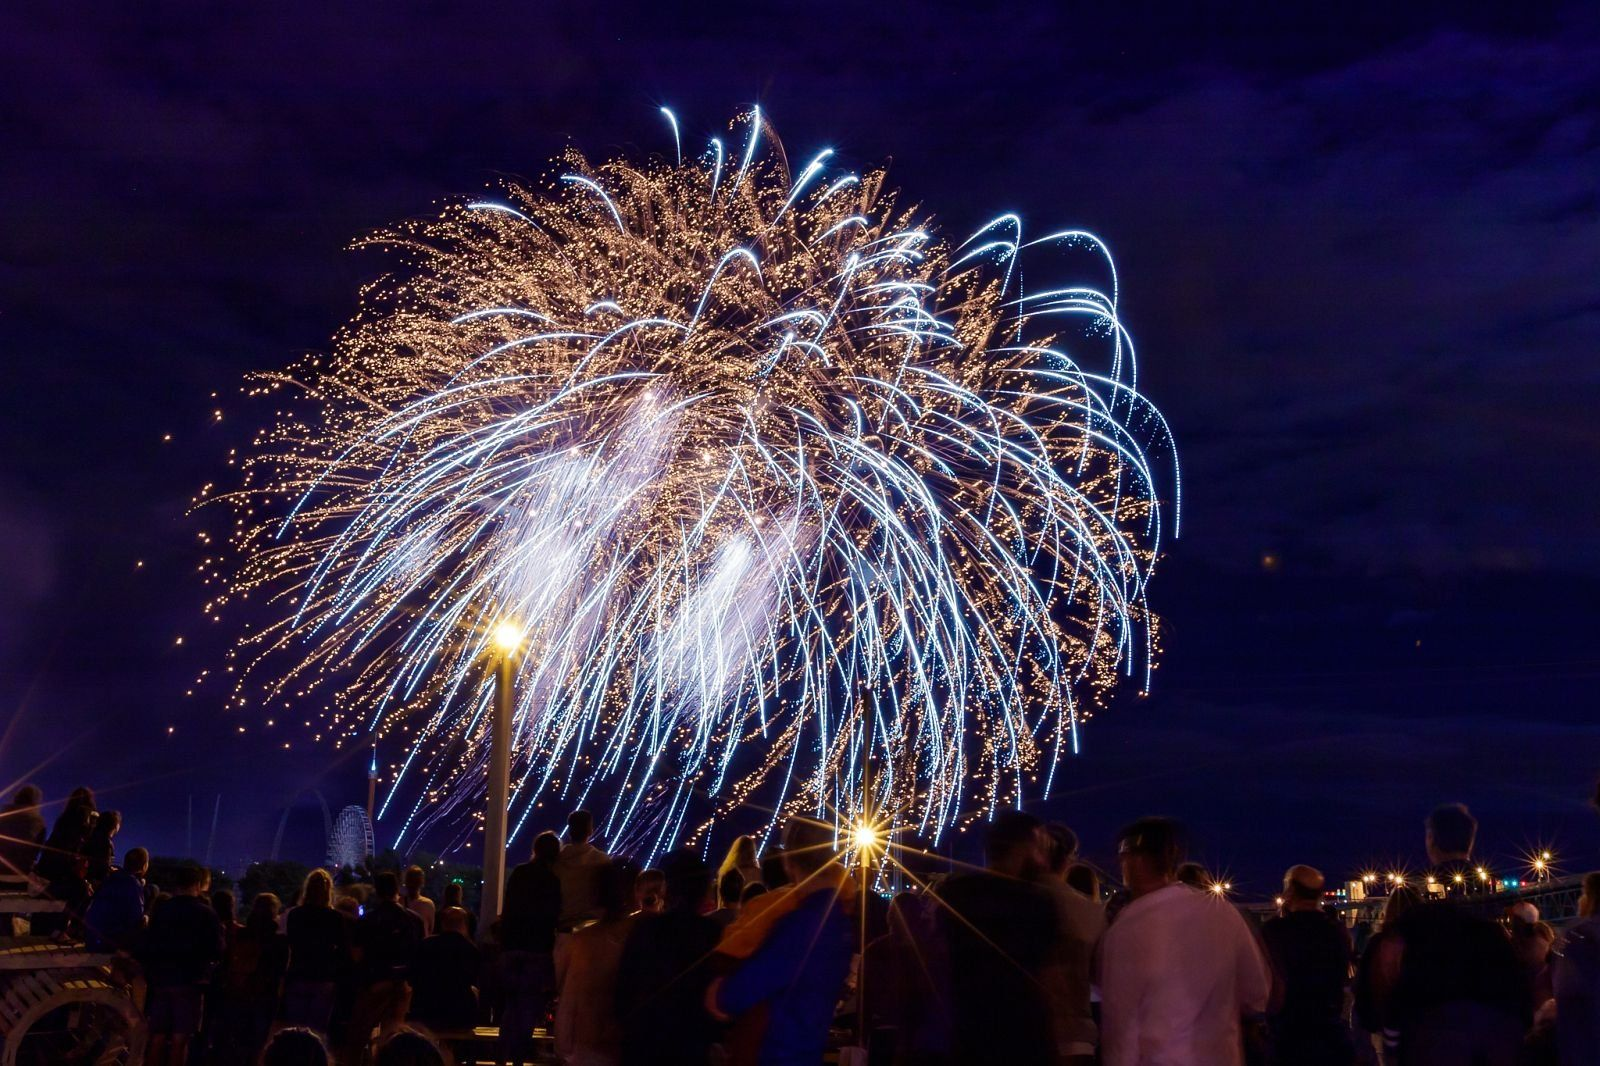 montreal_fireworks_competition_201731_1100.jpg